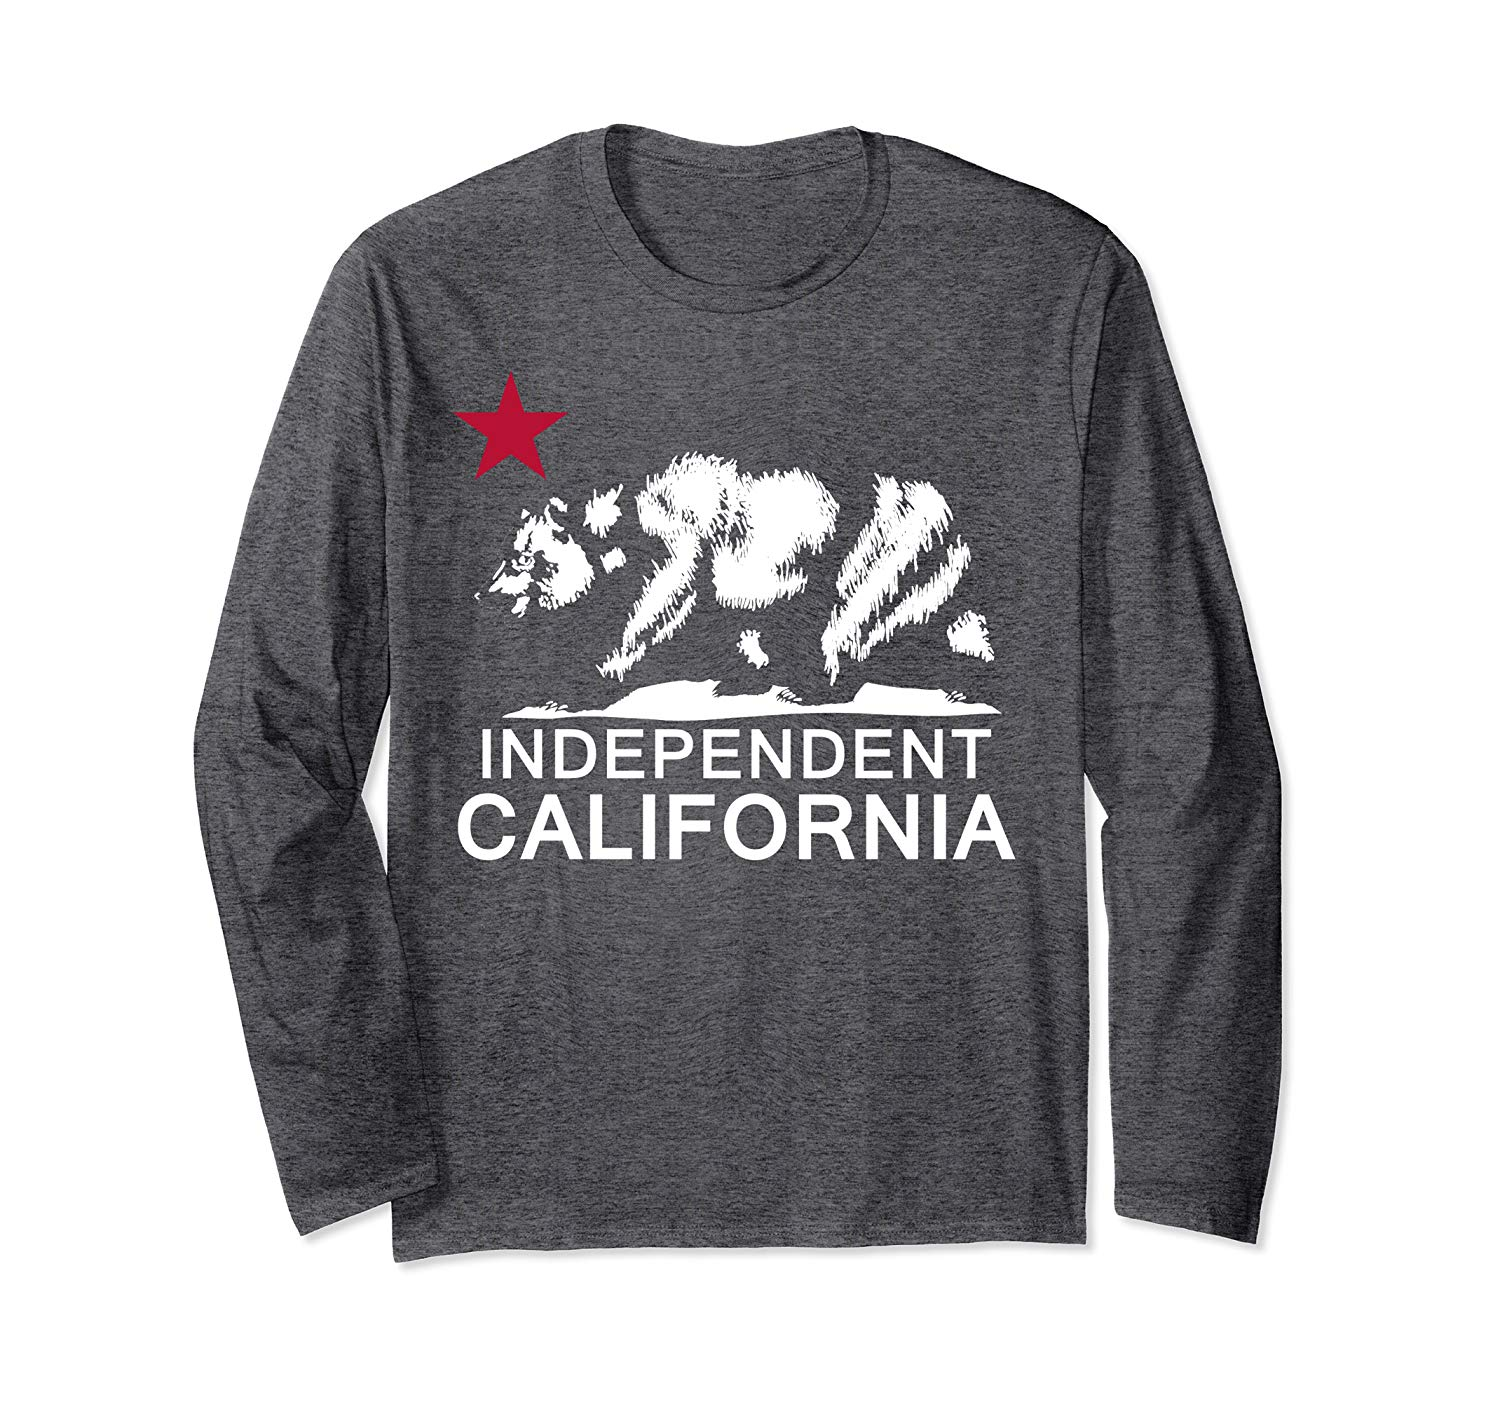 INDEPENDENT CALIFORNIA Yes, Make California Its Own Country Long Sleeve T-Shirt